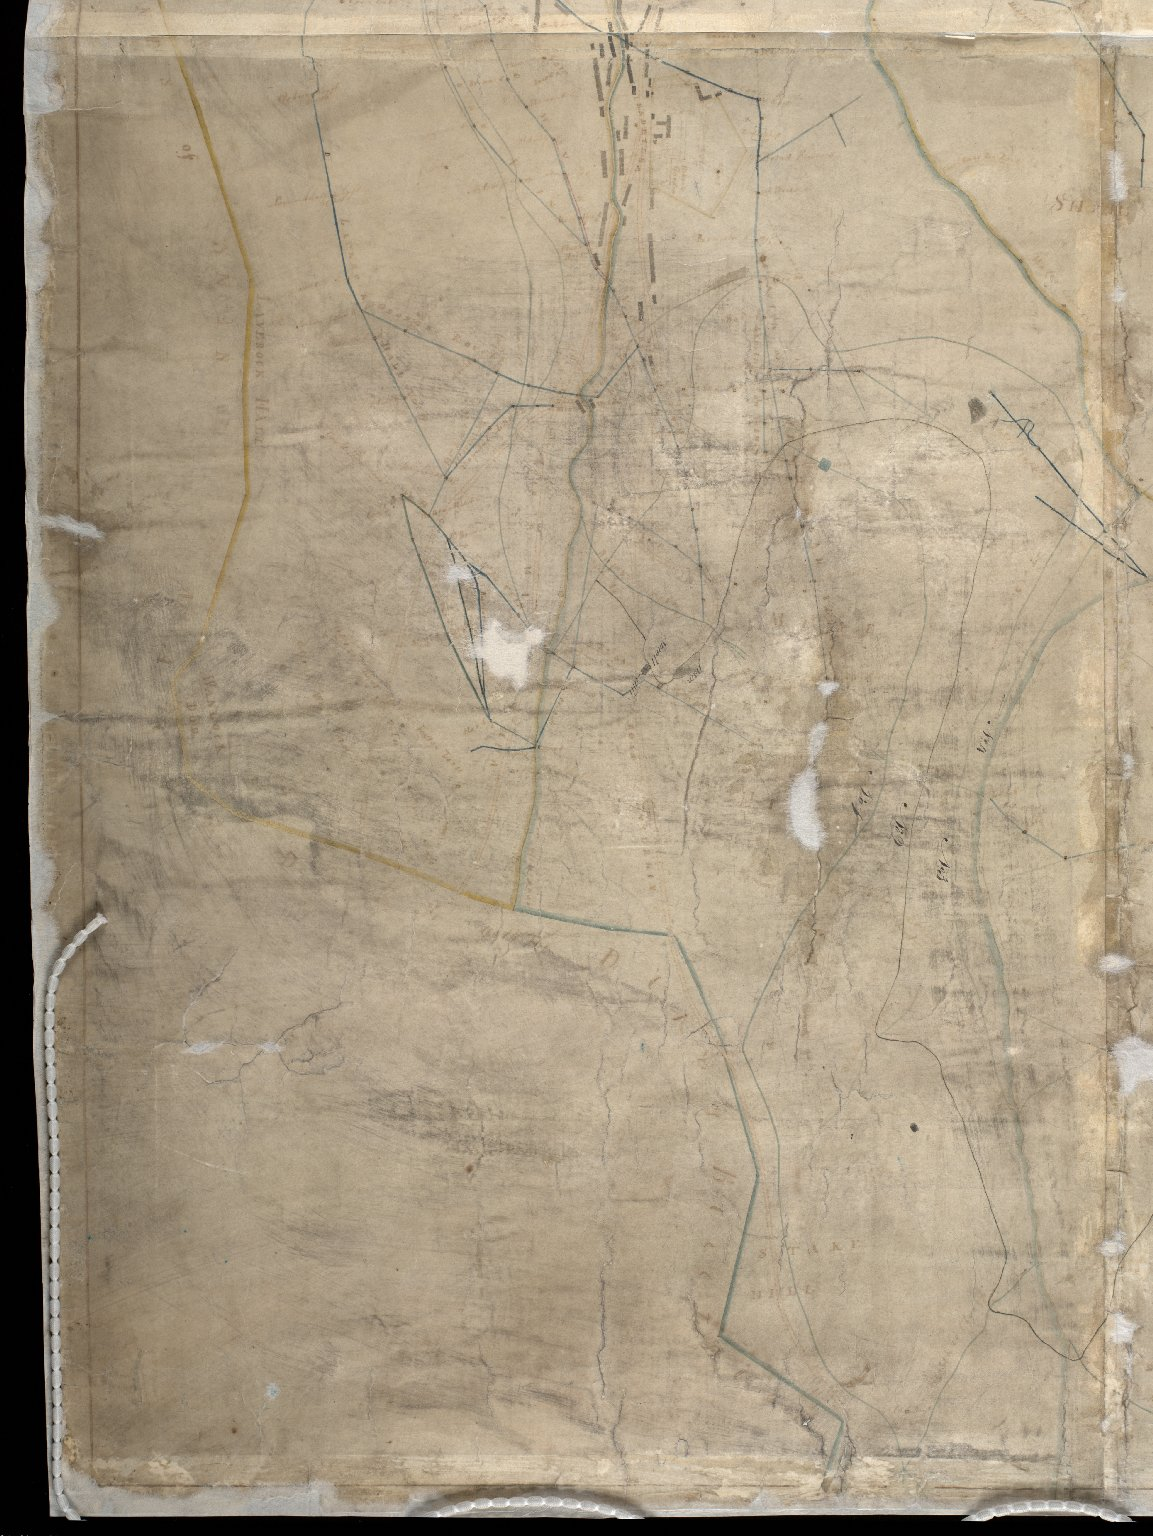 Copy of a Map of the Lead Mines [?] the Estate of the Right Honble the Earl of Hopetoun Leadhills in the county of Lanark [3 of 4]